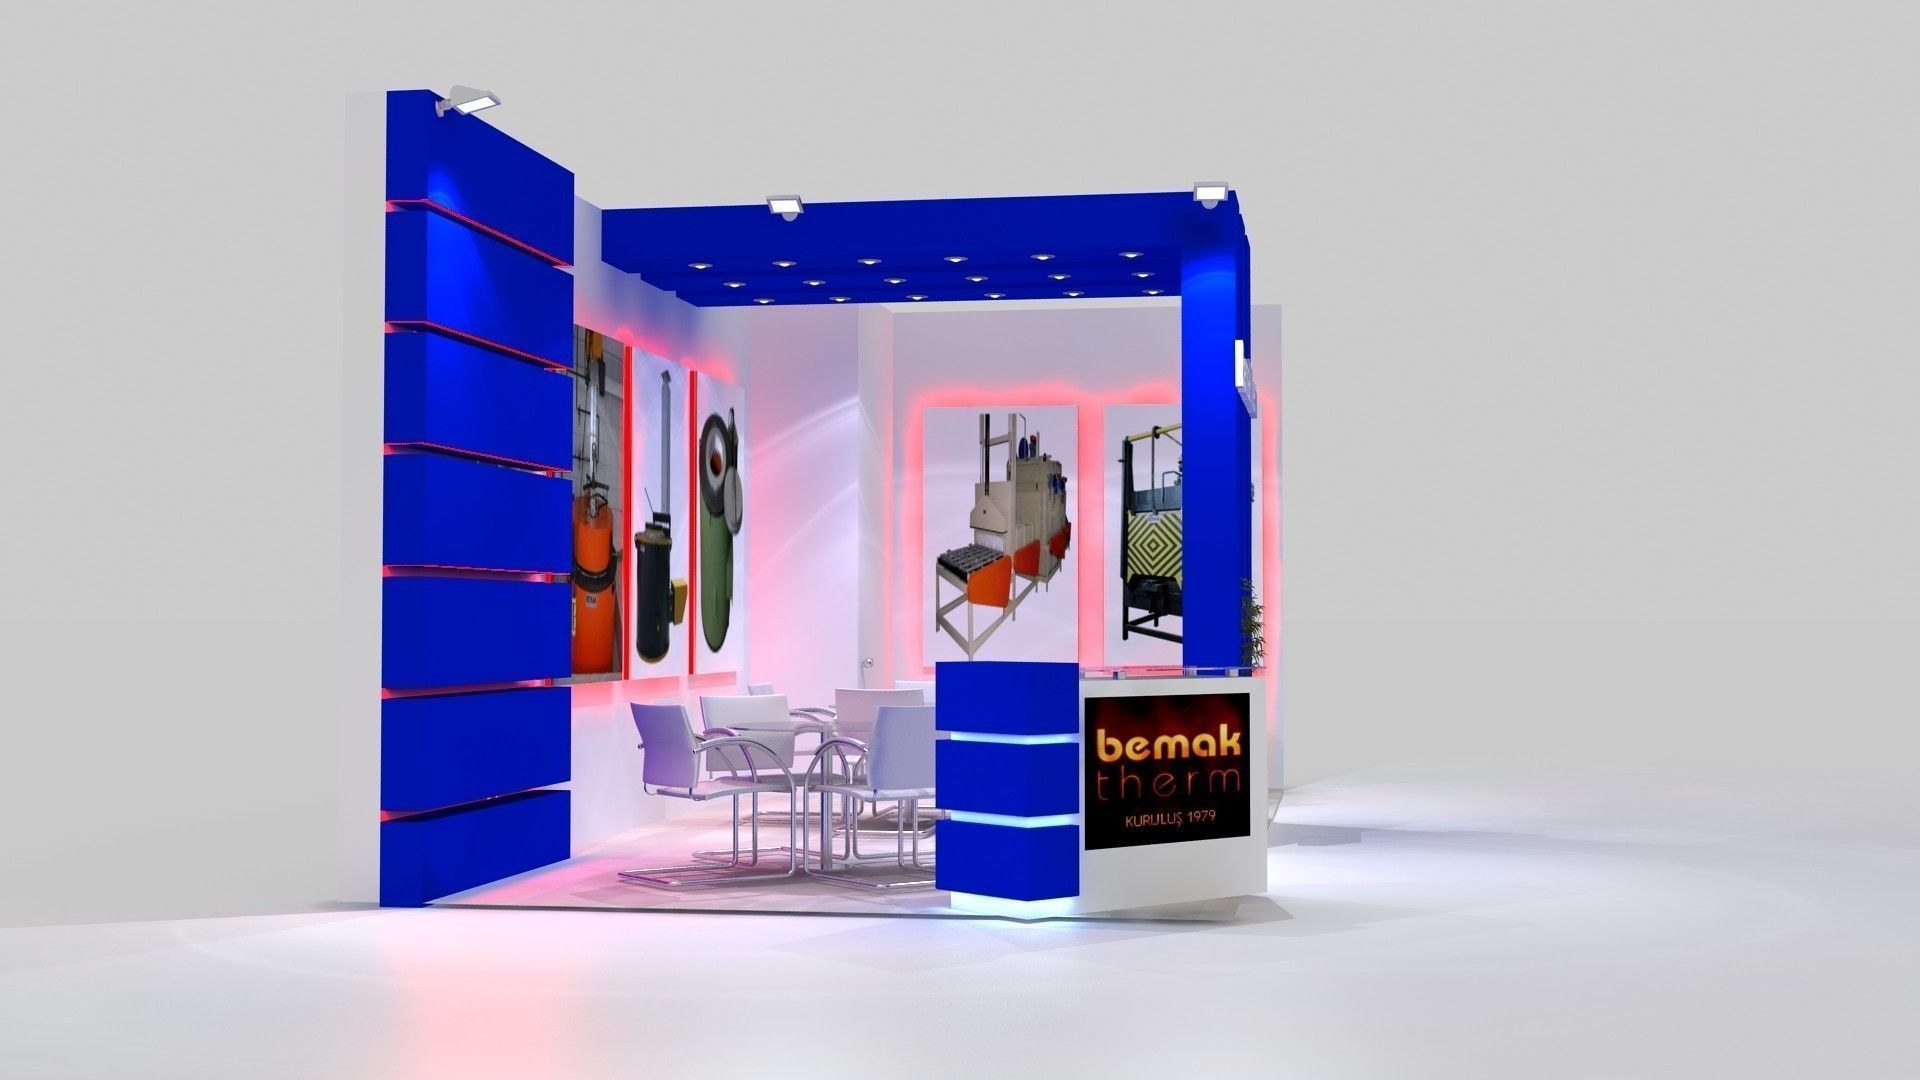 Exhibition Stand Design 3d Max : Bemaktherm exhibition stand design d model max cgtrader